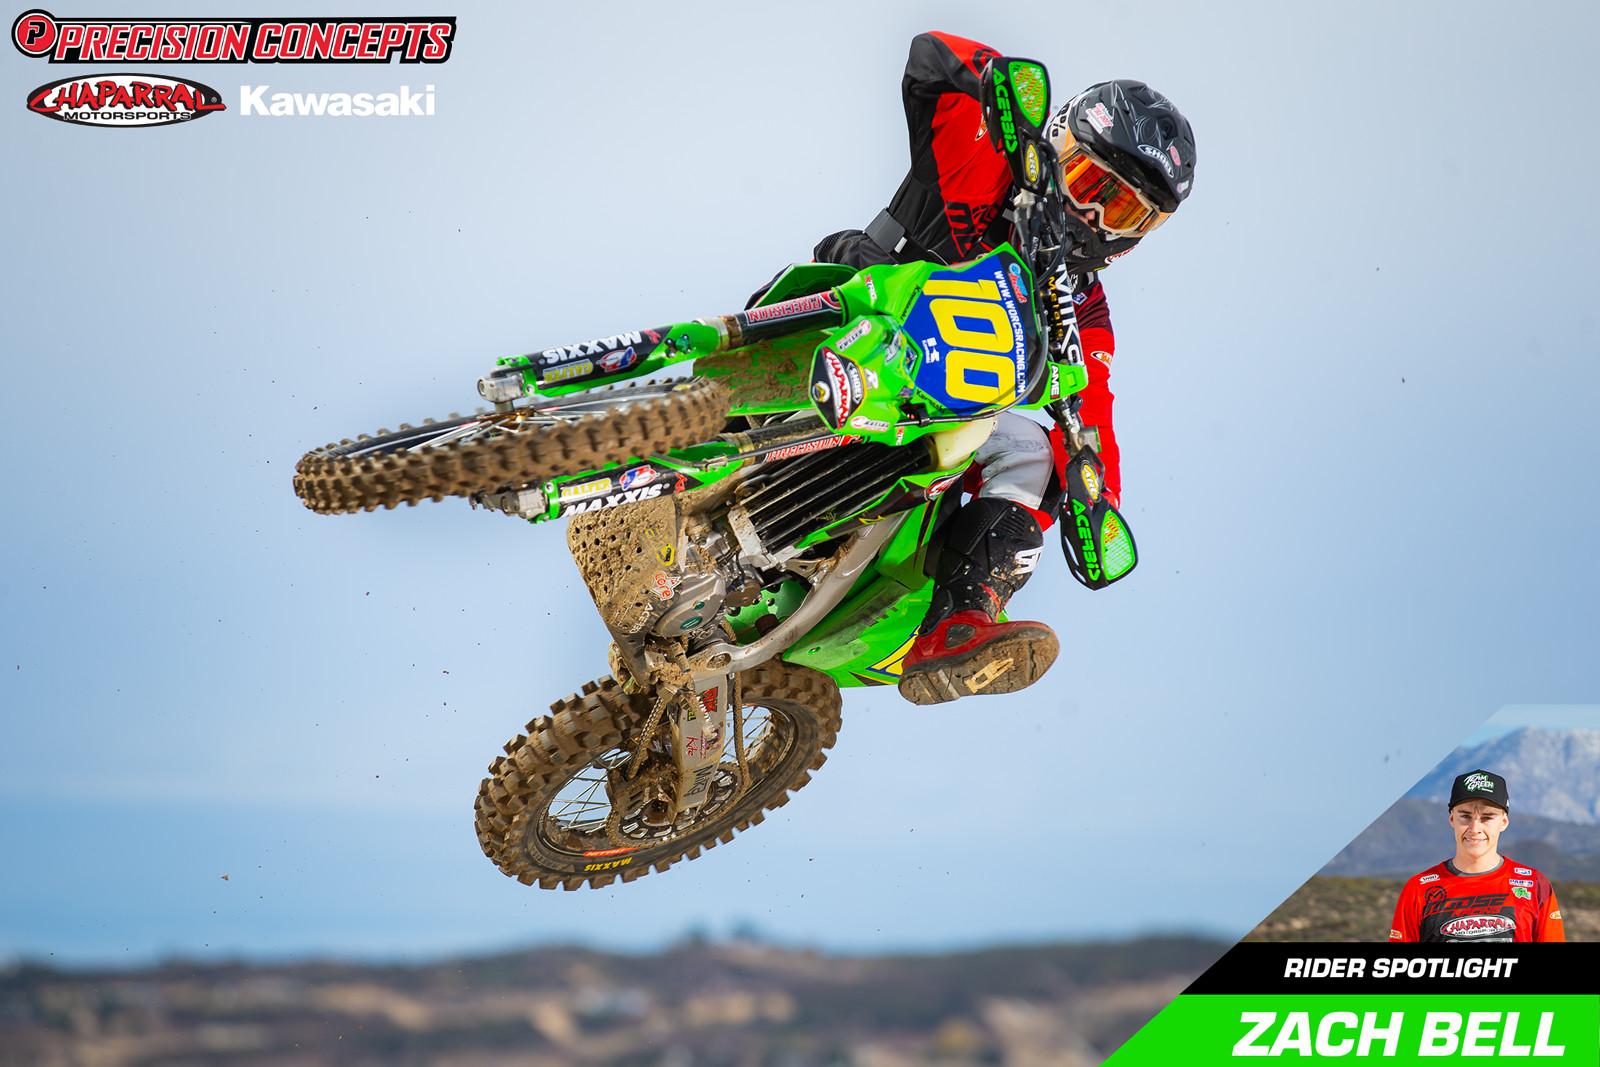 Precision Concepts Race Team Rider Spotlight: Zach Bell